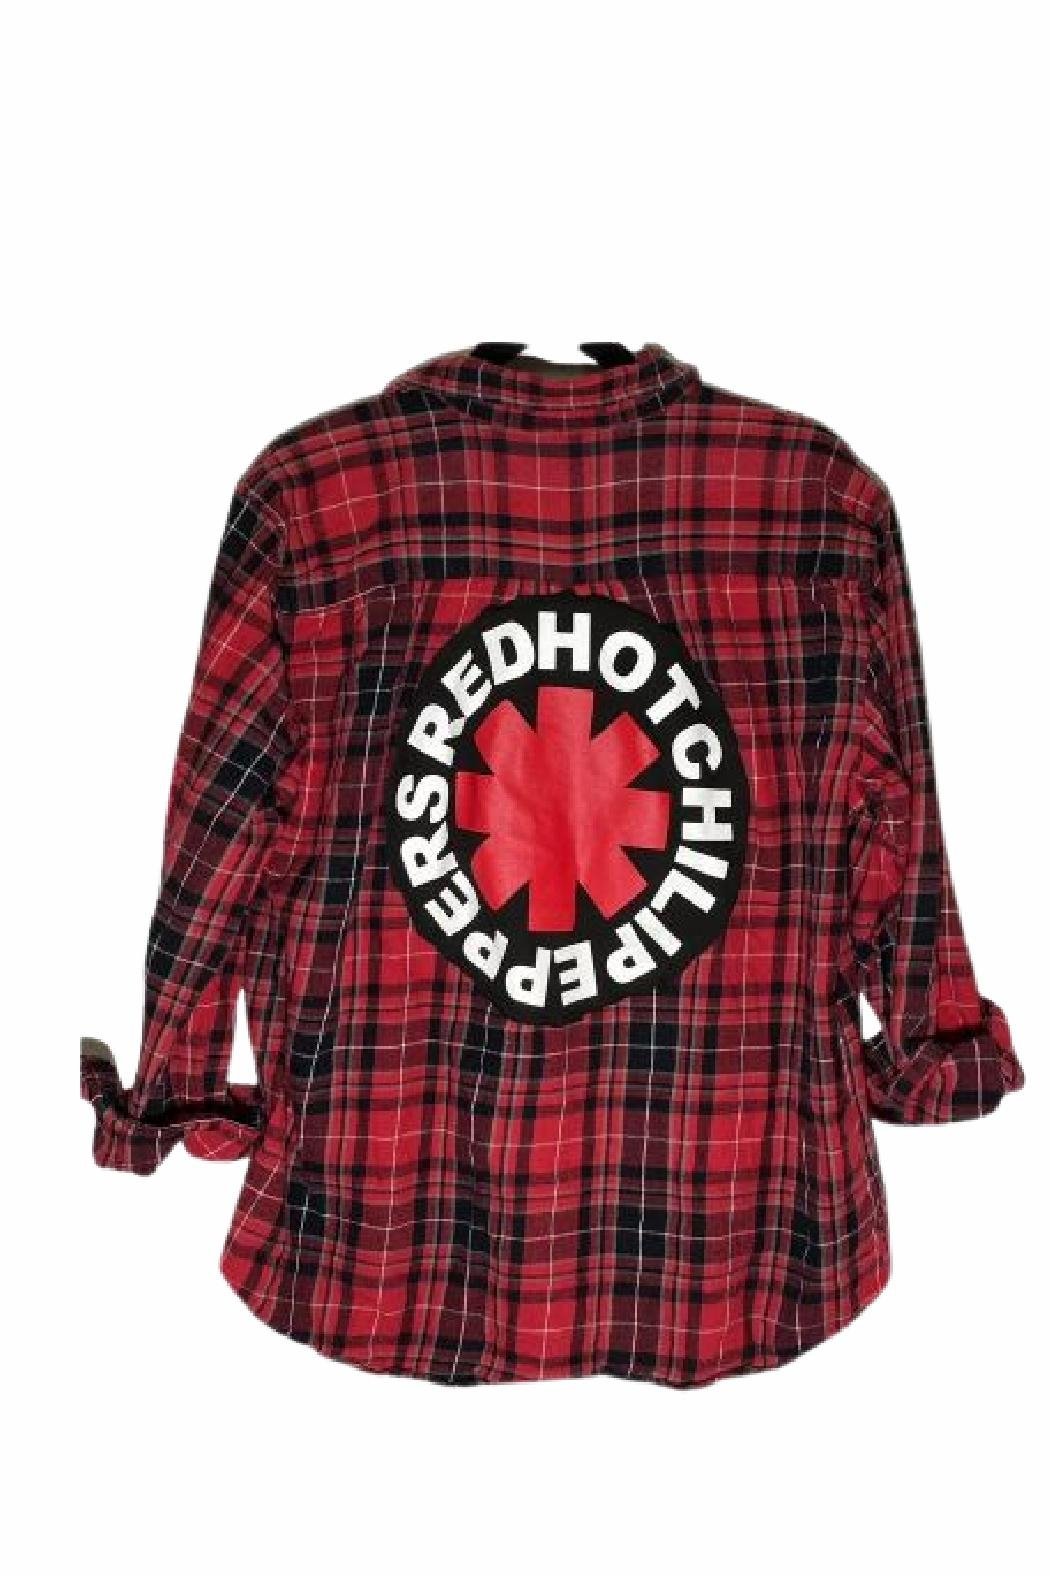 Sojara Vintage Red Hot Chili Peppers Flannel Shirt - Main Image